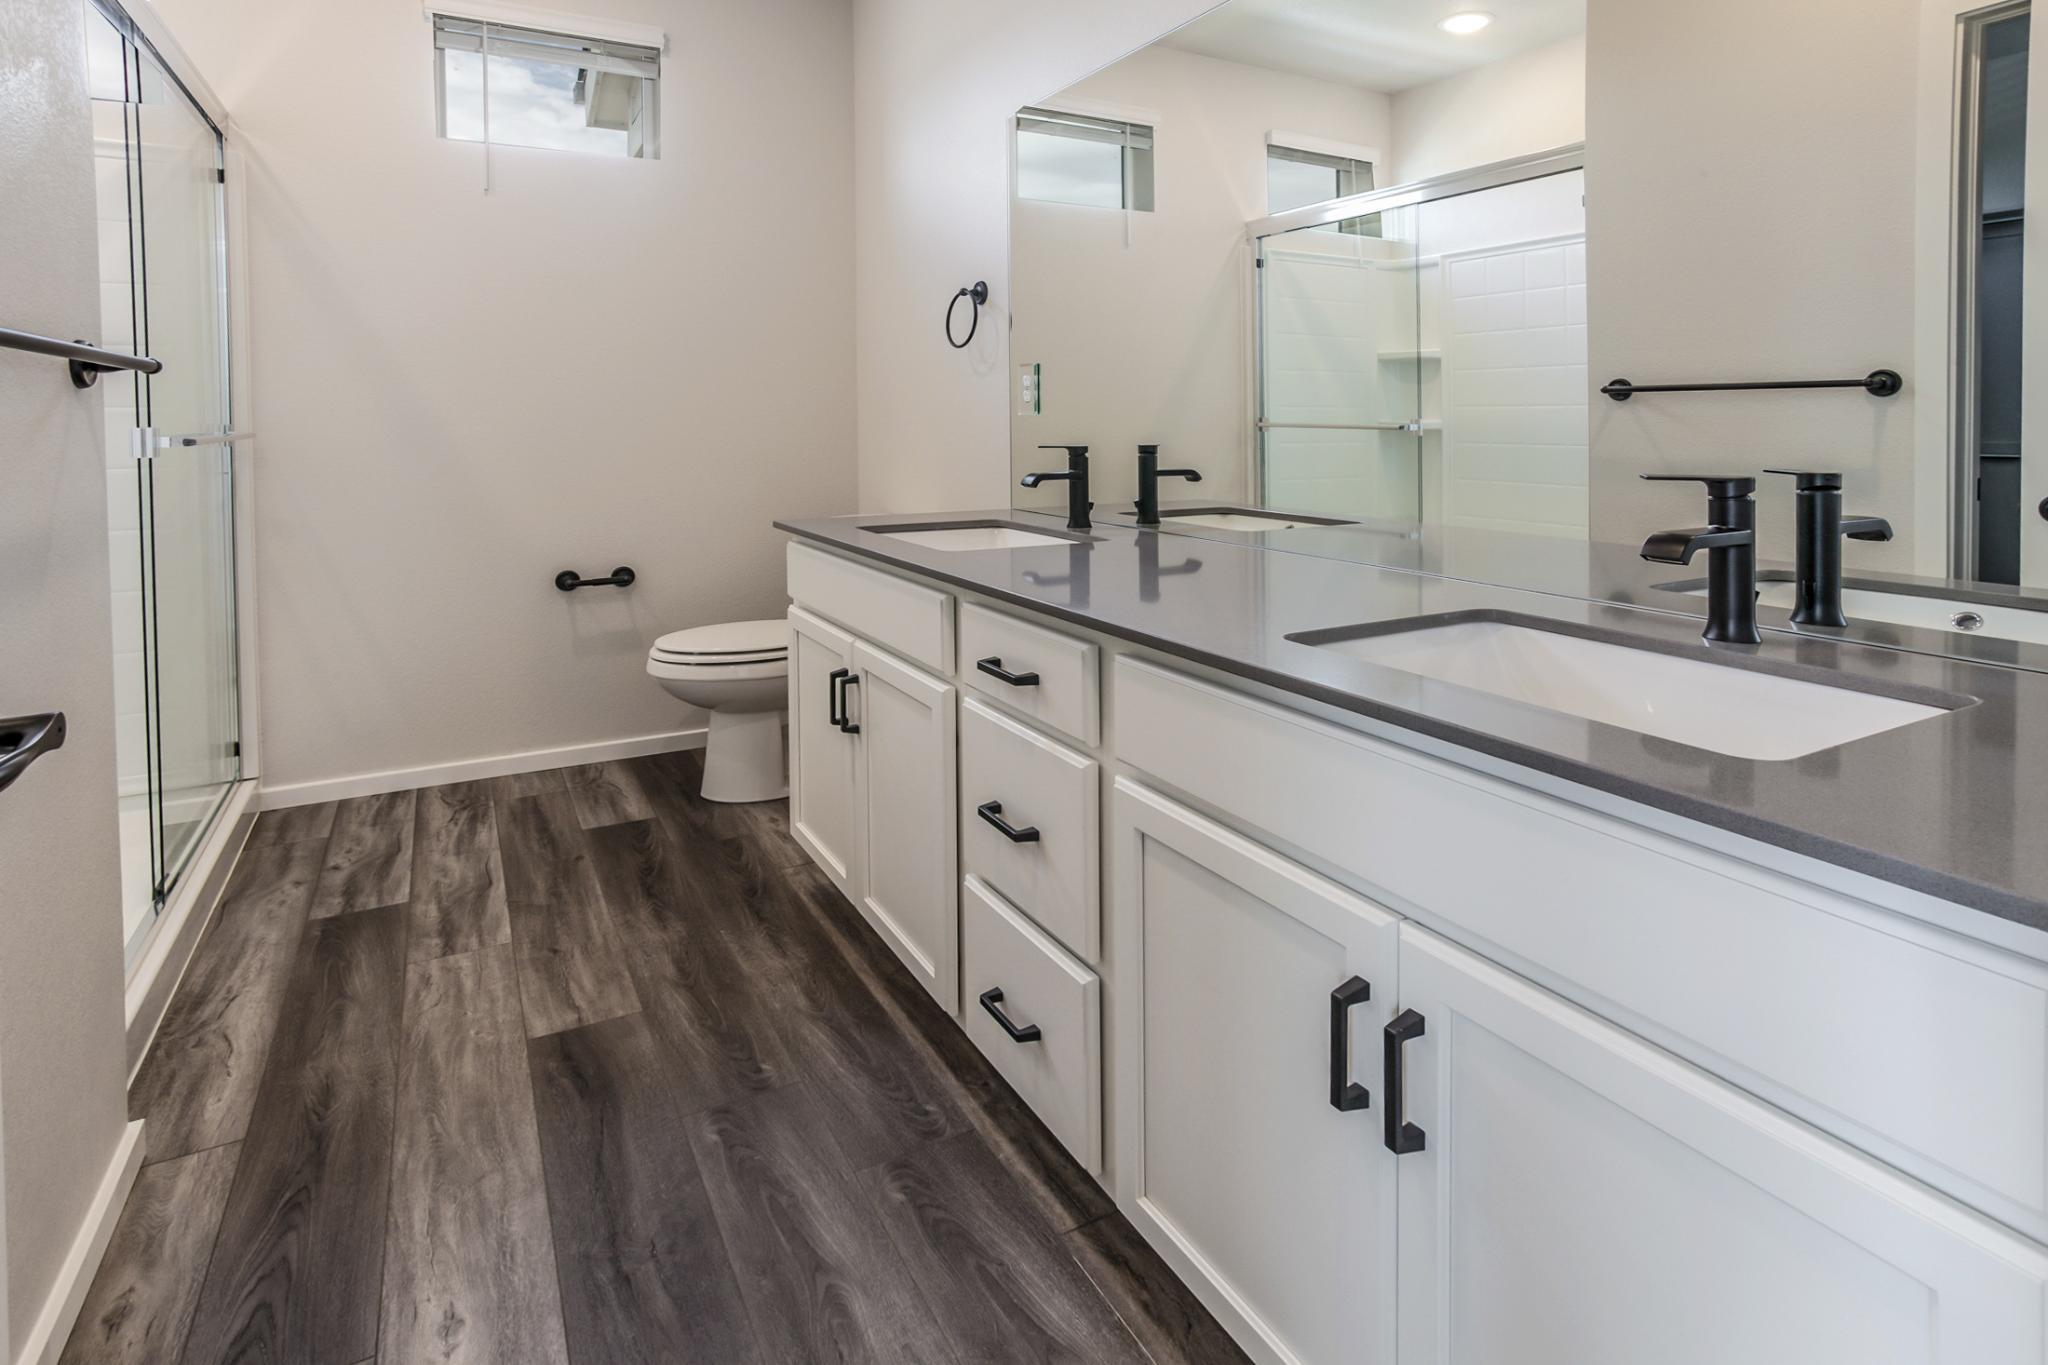 Bathroom featured in The Rockefeller By Hartford Homes in Fort Collins-Loveland, CO